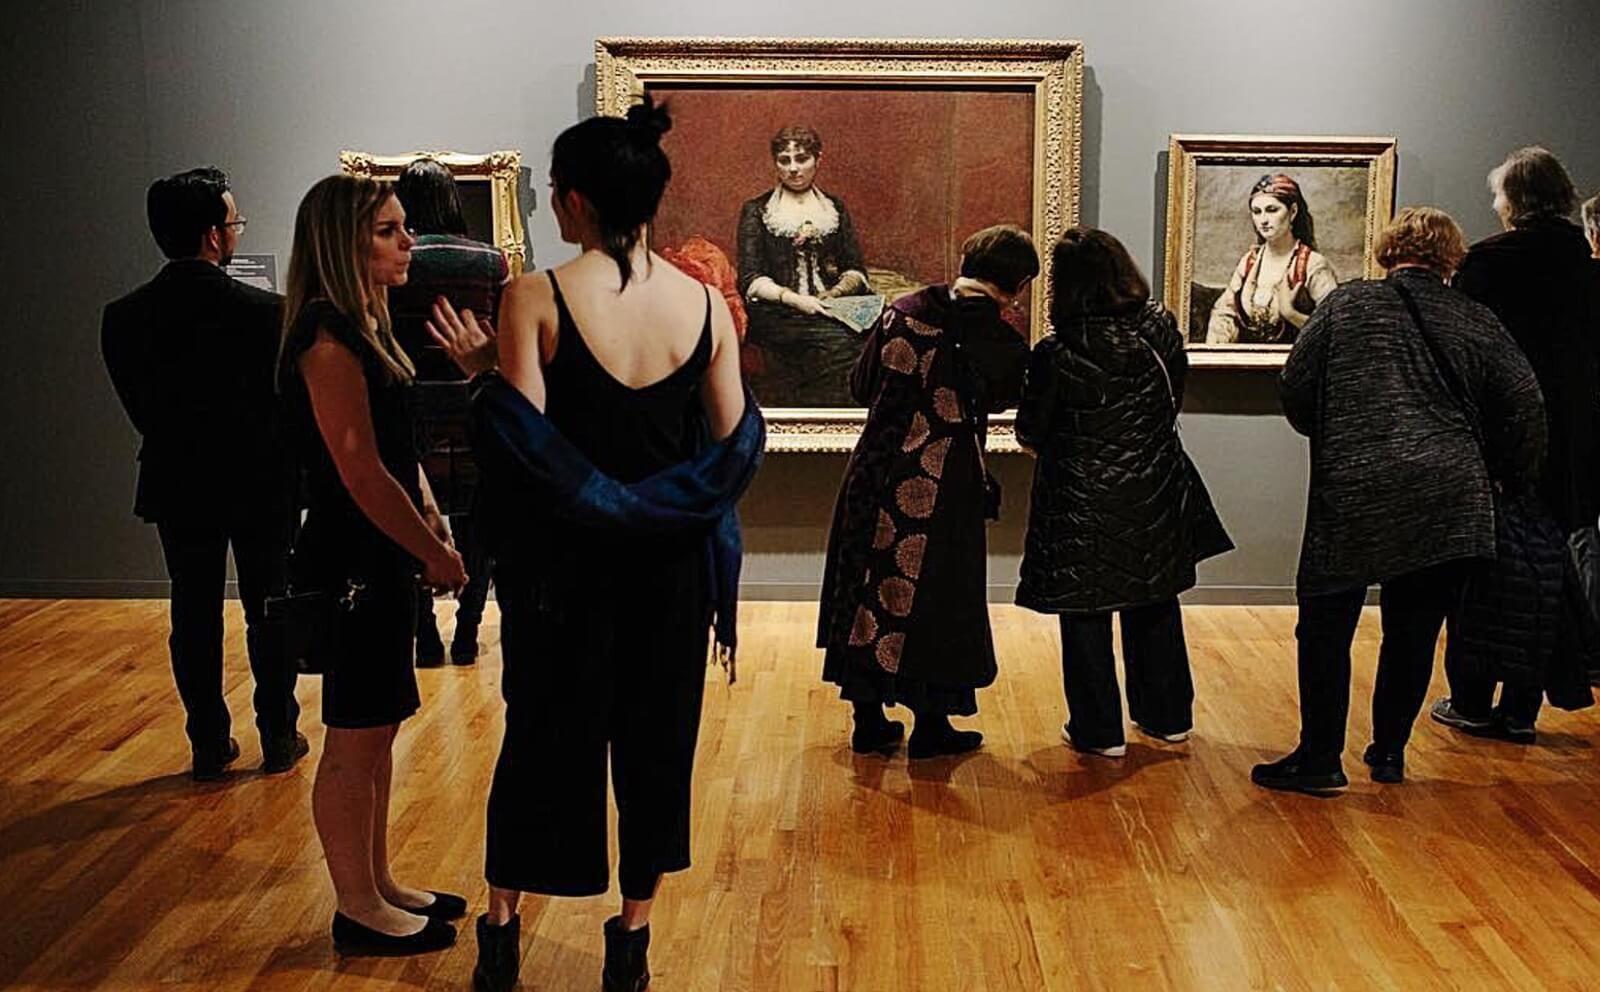 A group of women admire paintings at the Vancouver Art Gallery